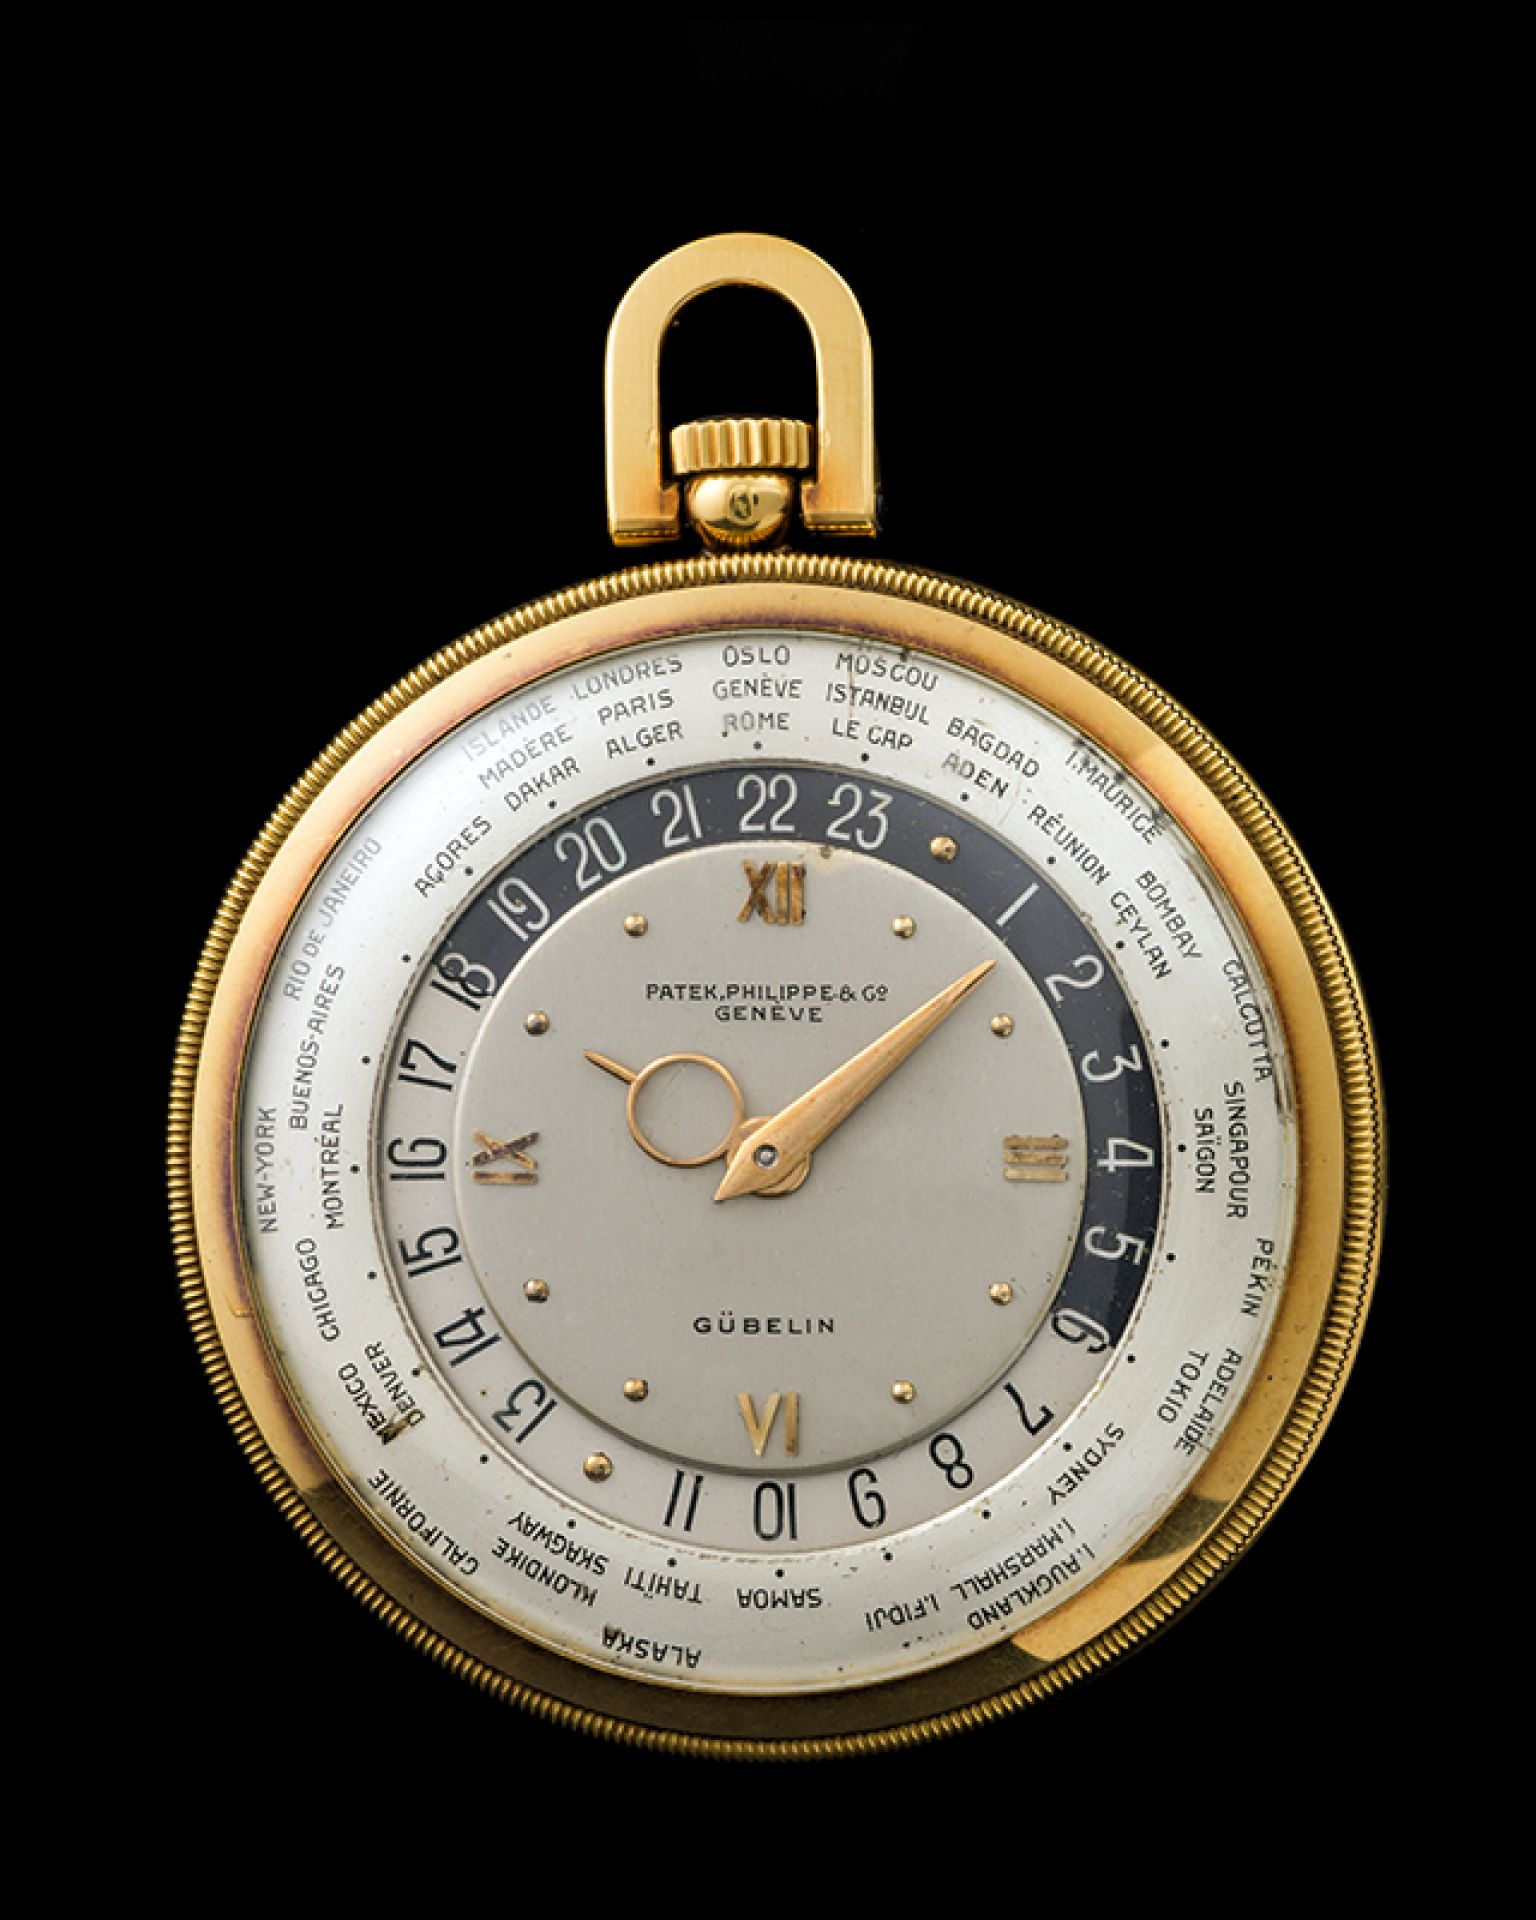 """Patek Philippe """"The yellow gold Worldtime pocketwatch retailed by Gübelin"""""""